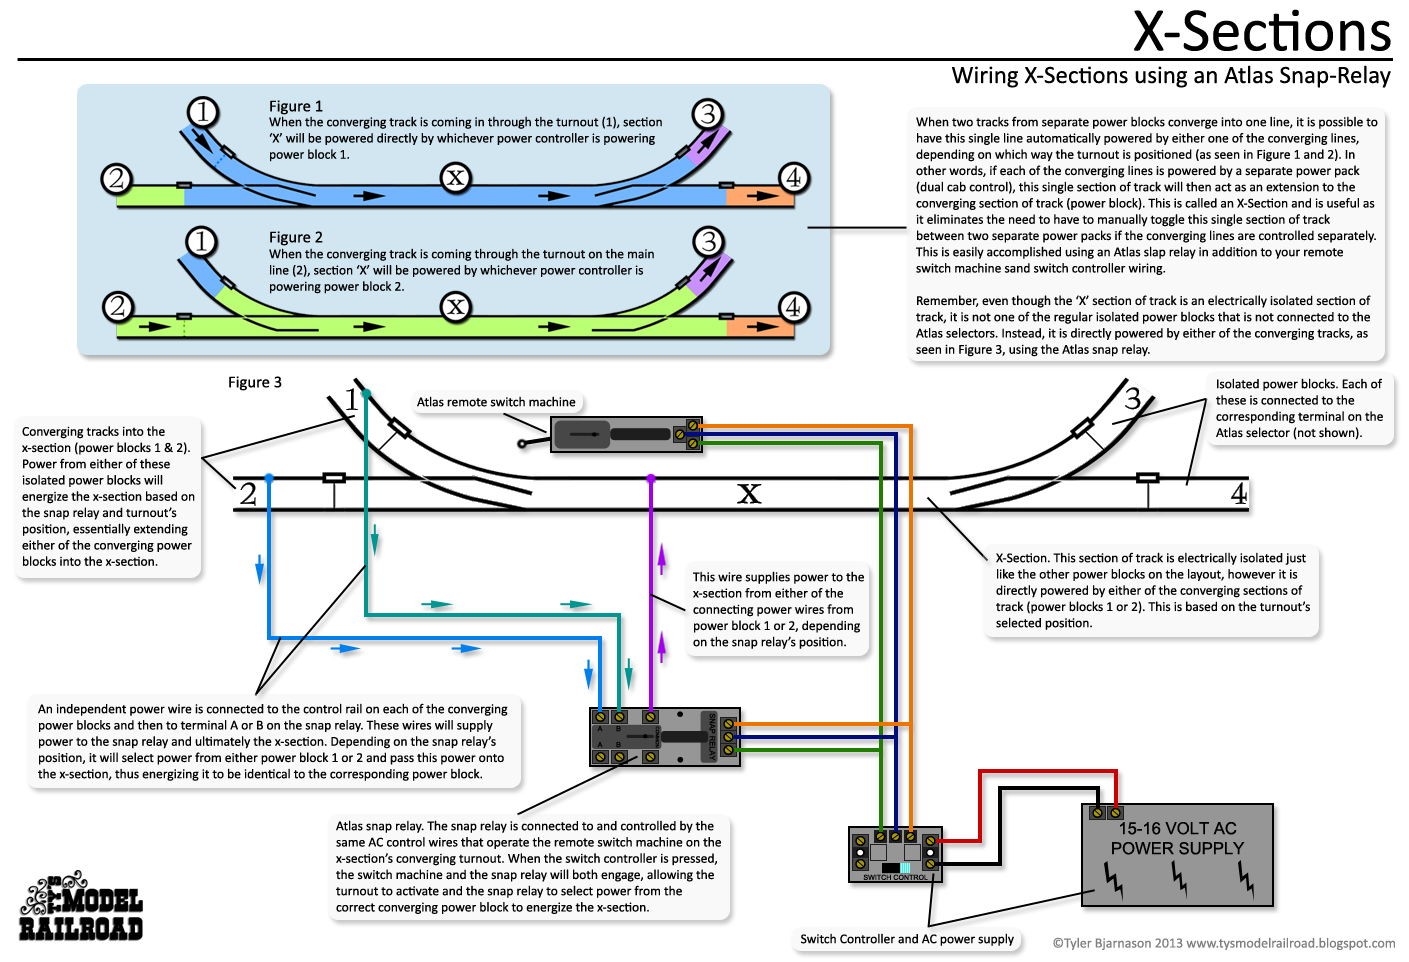 X Section Wiring ty's model railroad wiring diagrams Control Panel Electrical Wiring Basics at webbmarketing.co